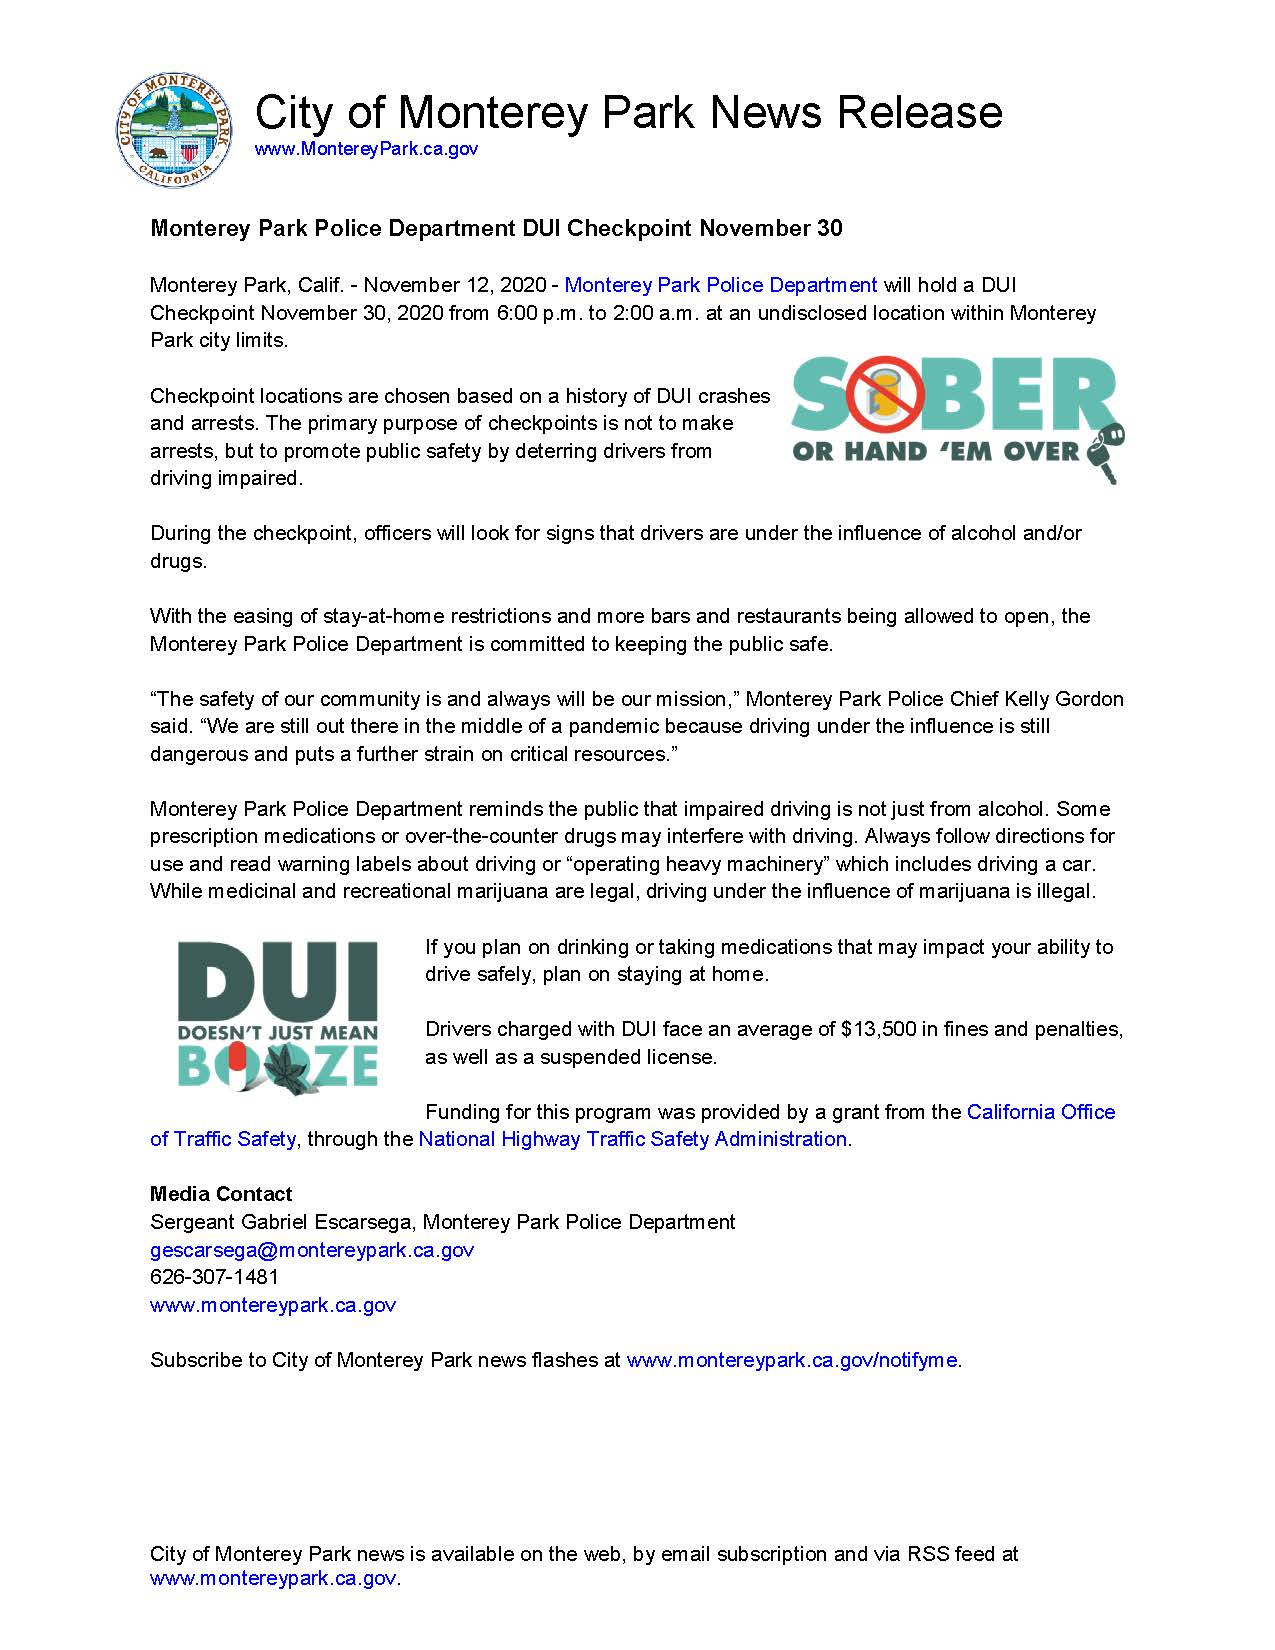 MPK News Release-Monterey Park Police Department DUI Checkpoint Nov 30